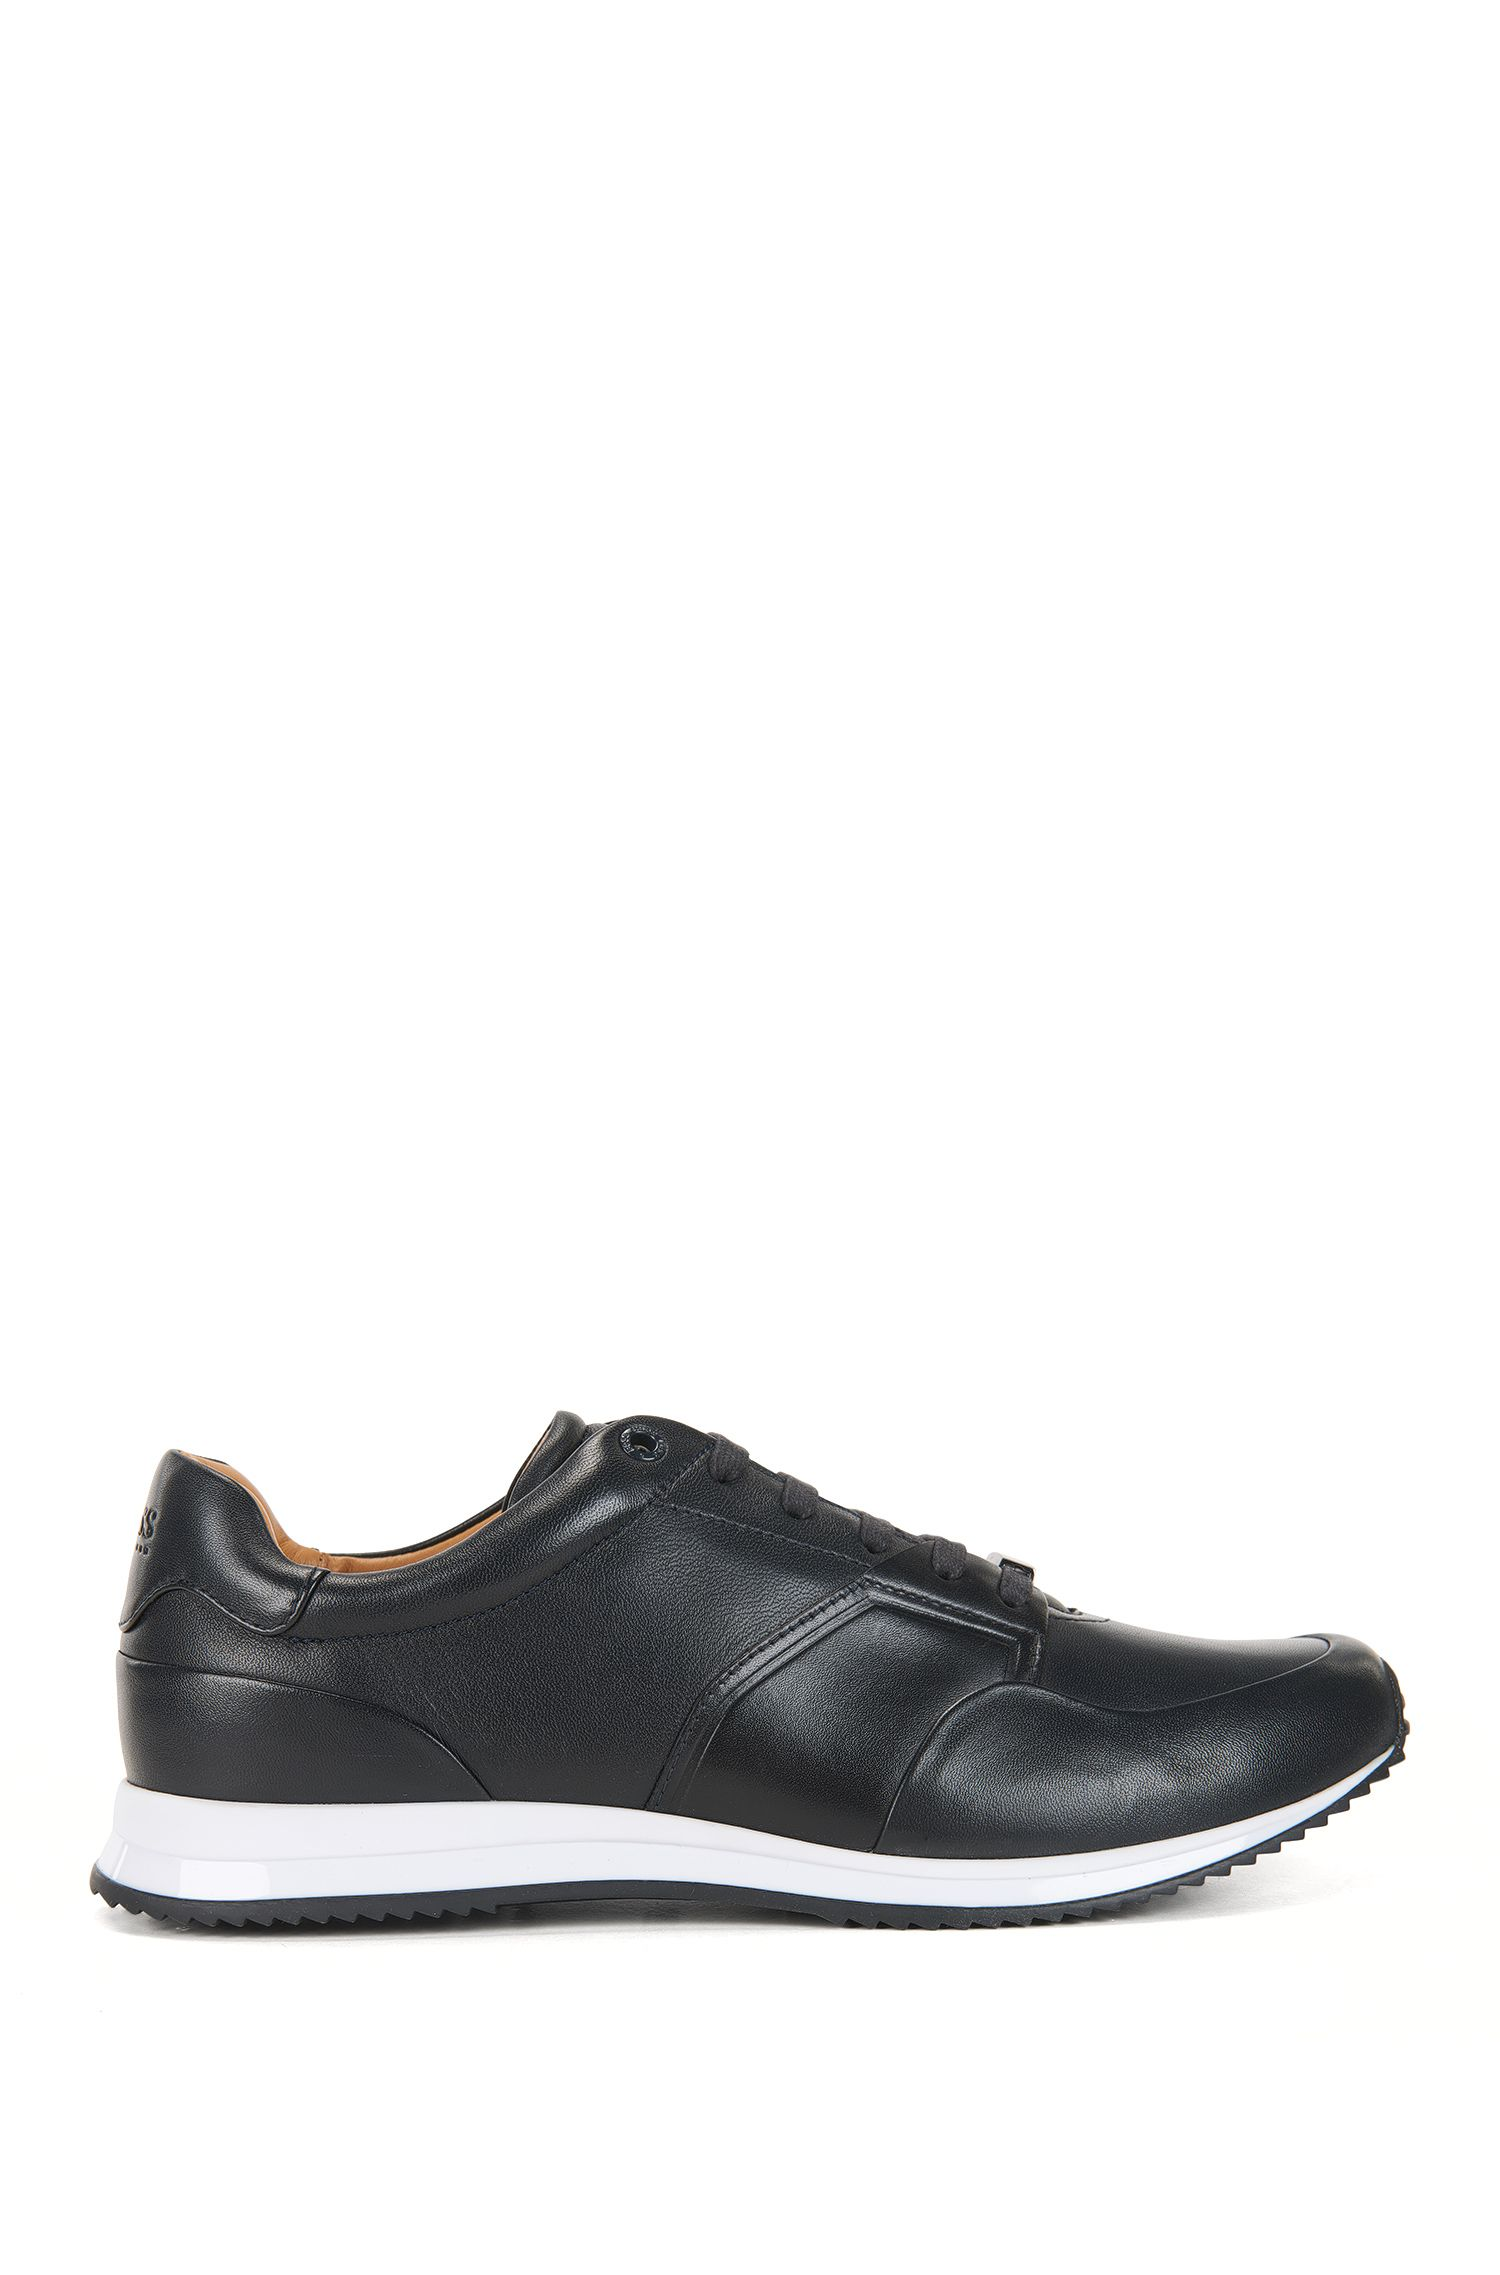 Low-top lace-up trainers in calf leather